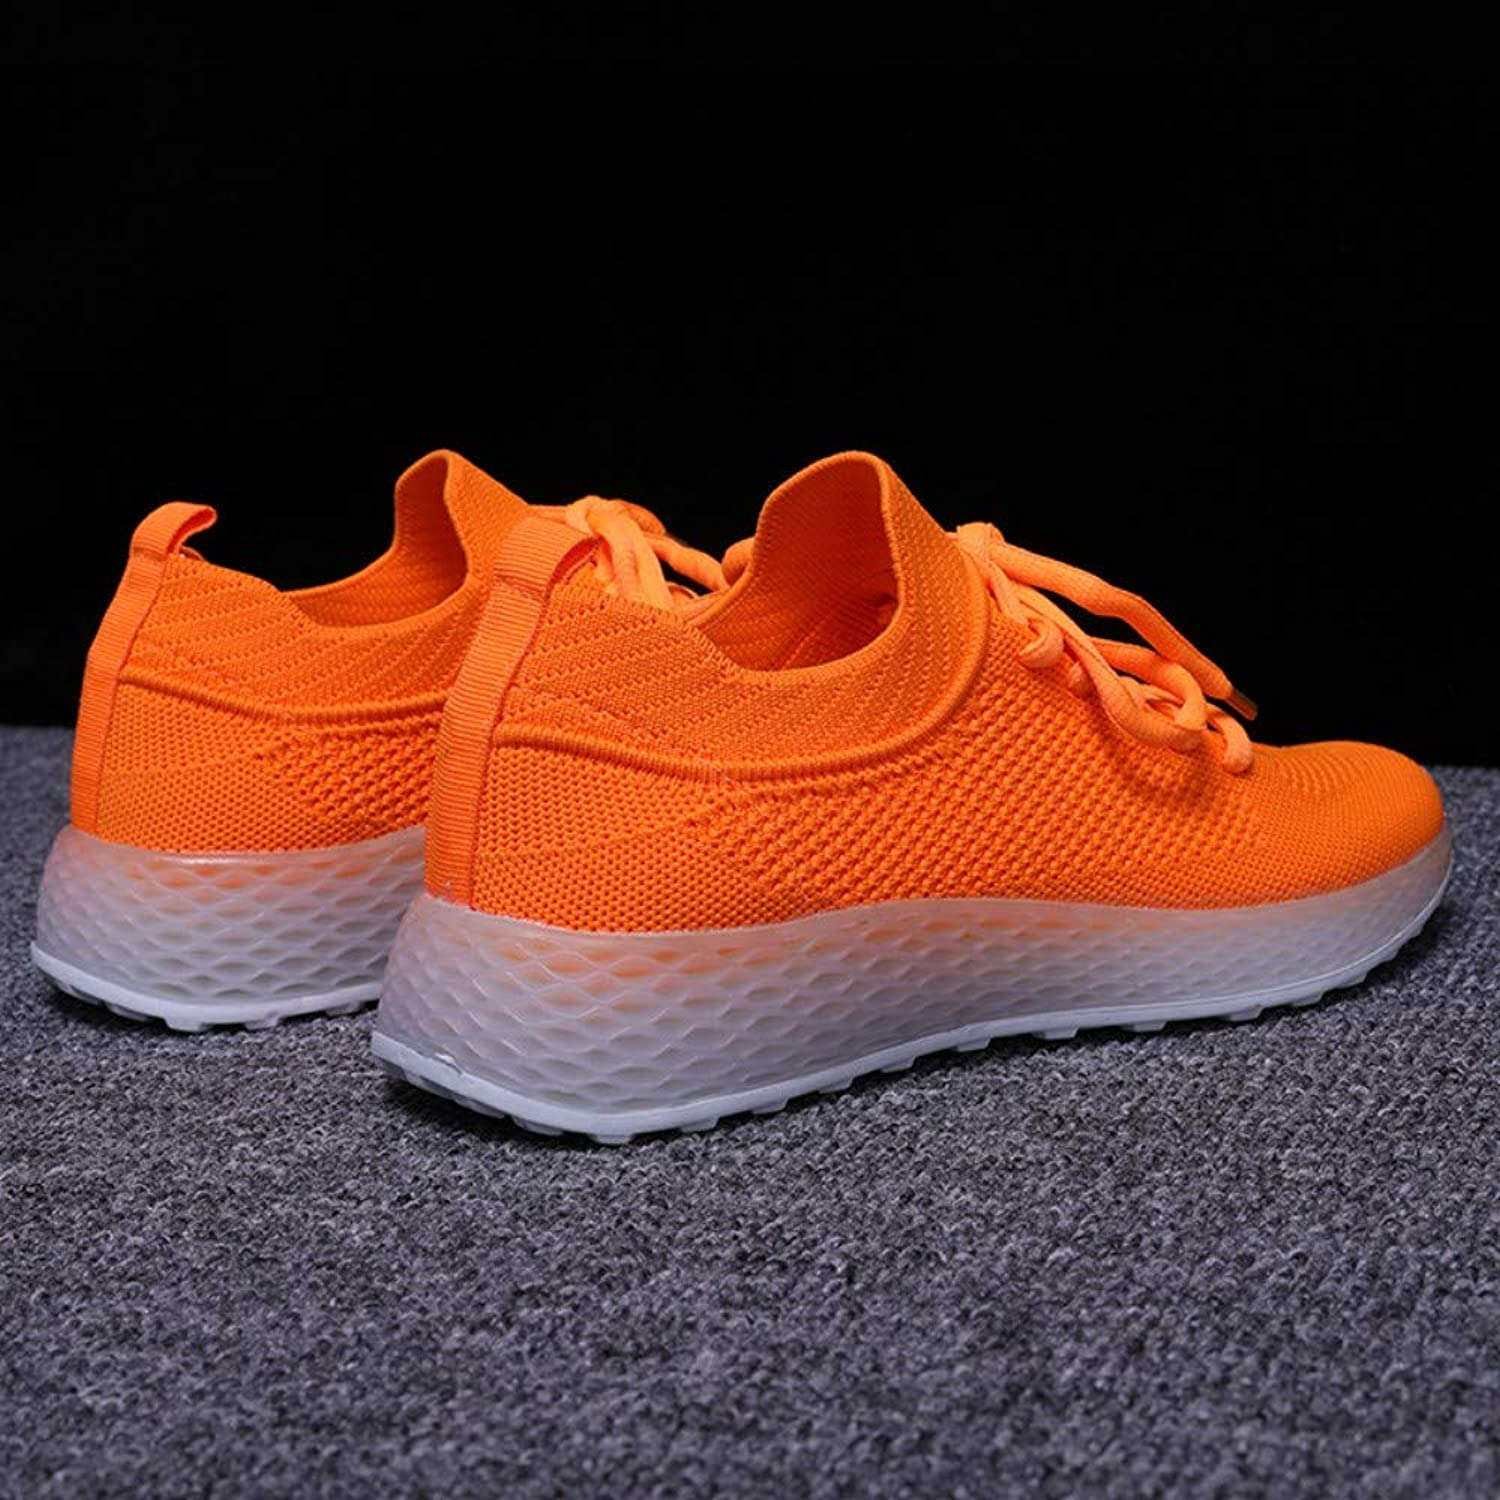 ZHIJINLI Sports shoes, casual students, single shoes, flying woven white shoes, mesh shoes, 6.5 SIZE